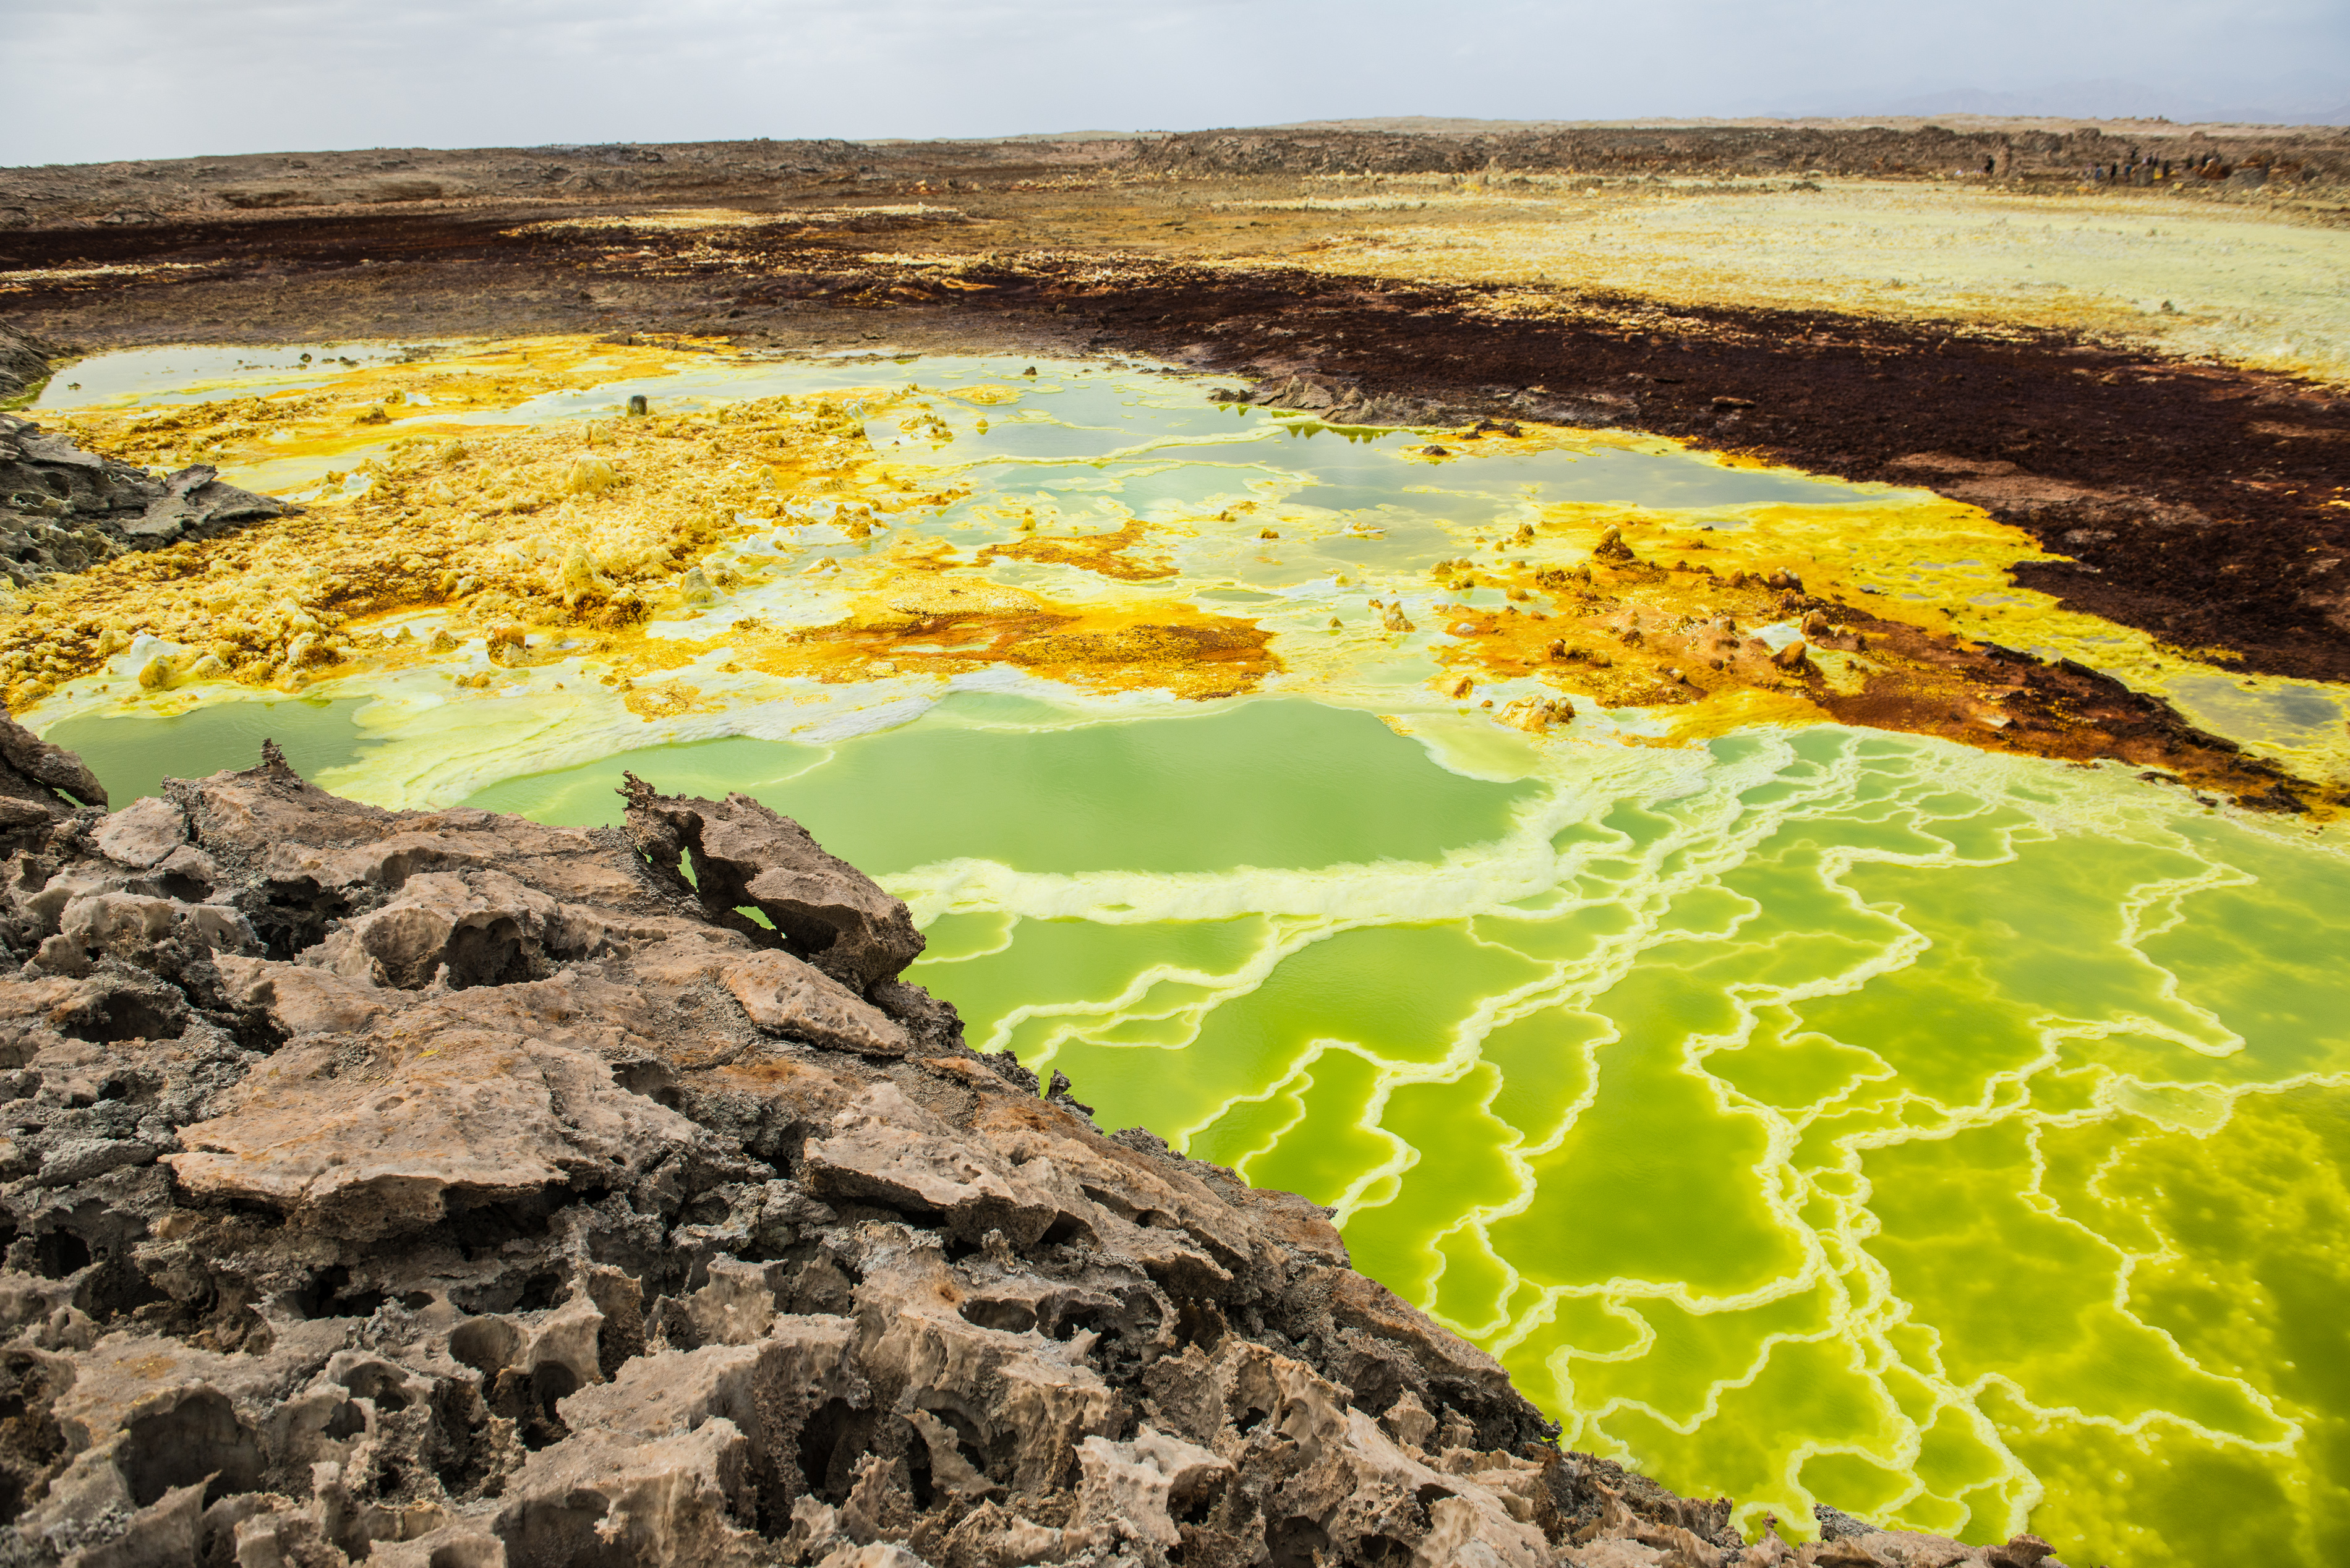 Surreal photos from the hottest place on earth | Adventure.com